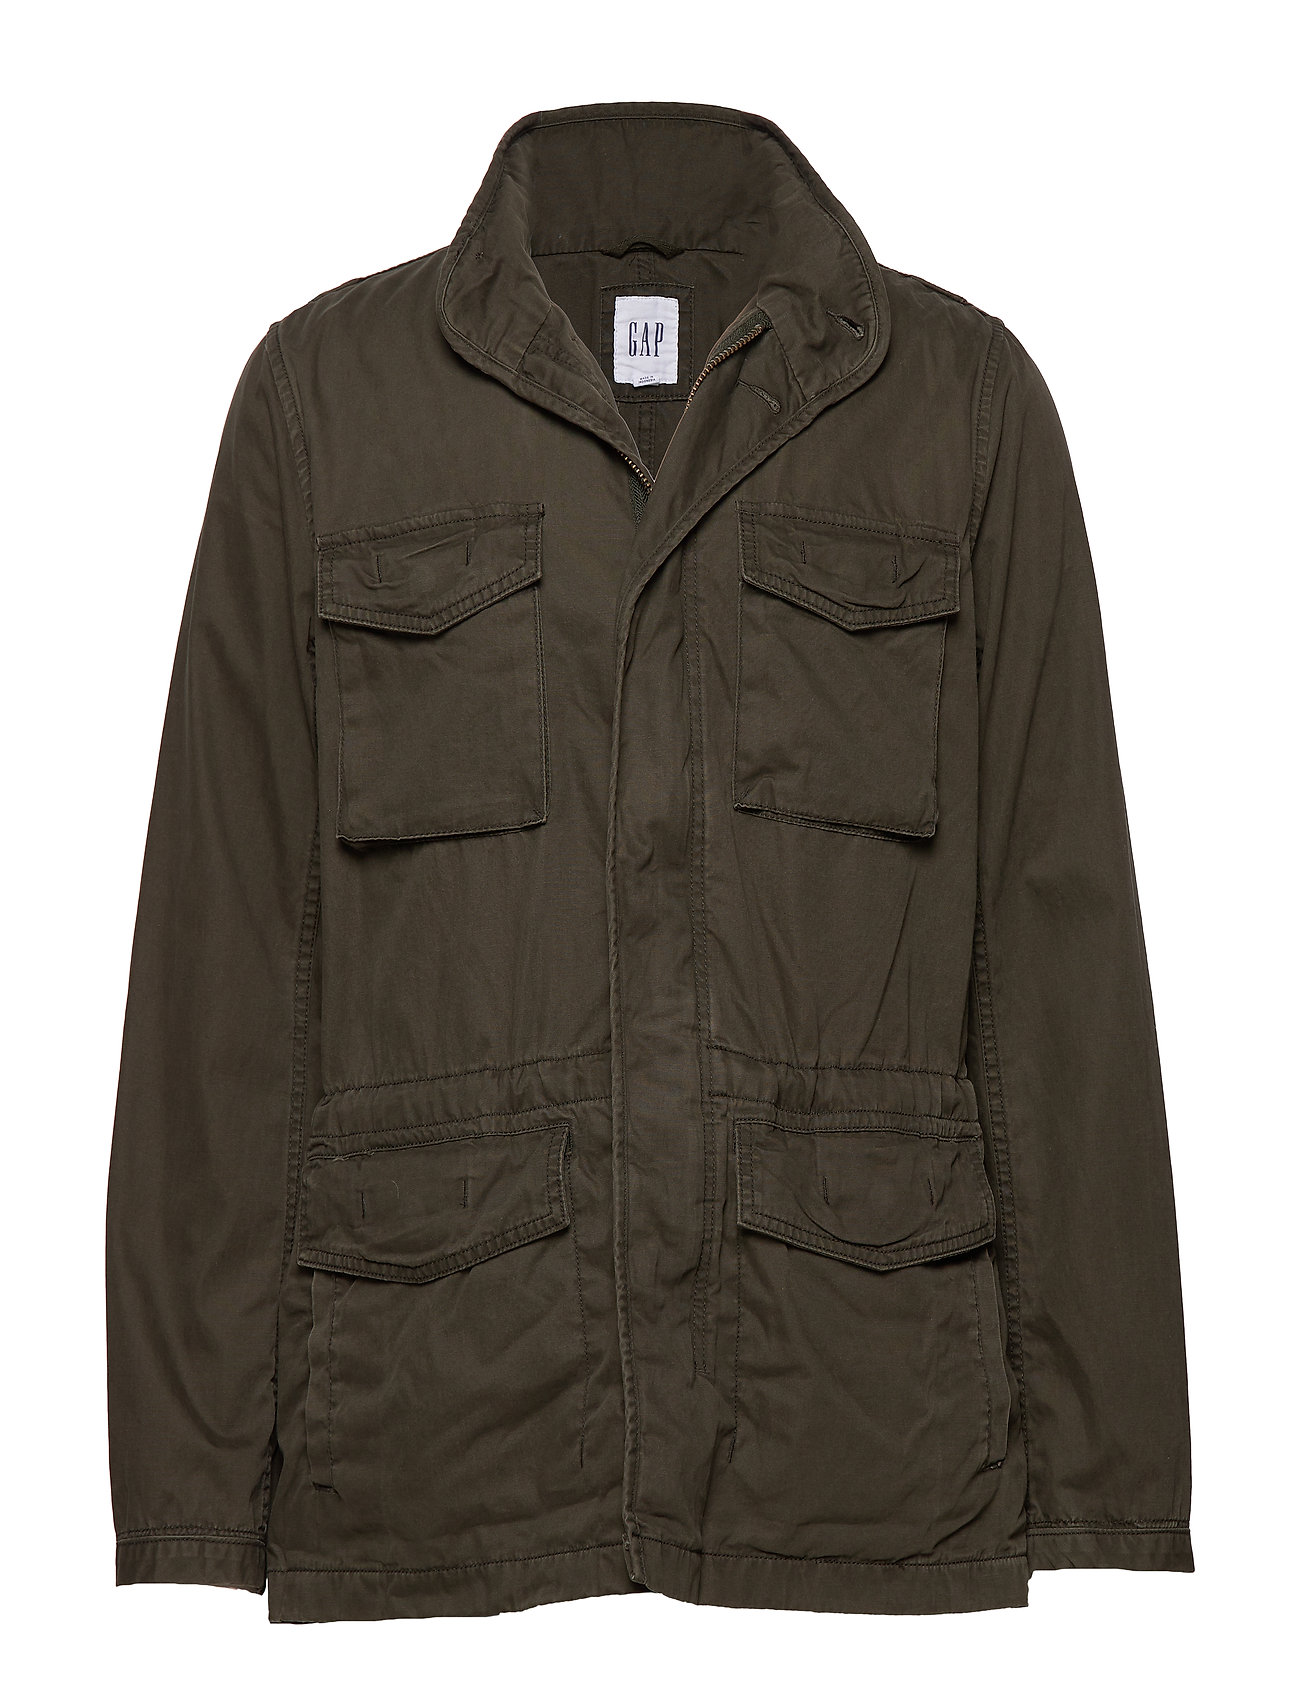 GAP V-FATIGUE JACKET - DEEP WOODS 651